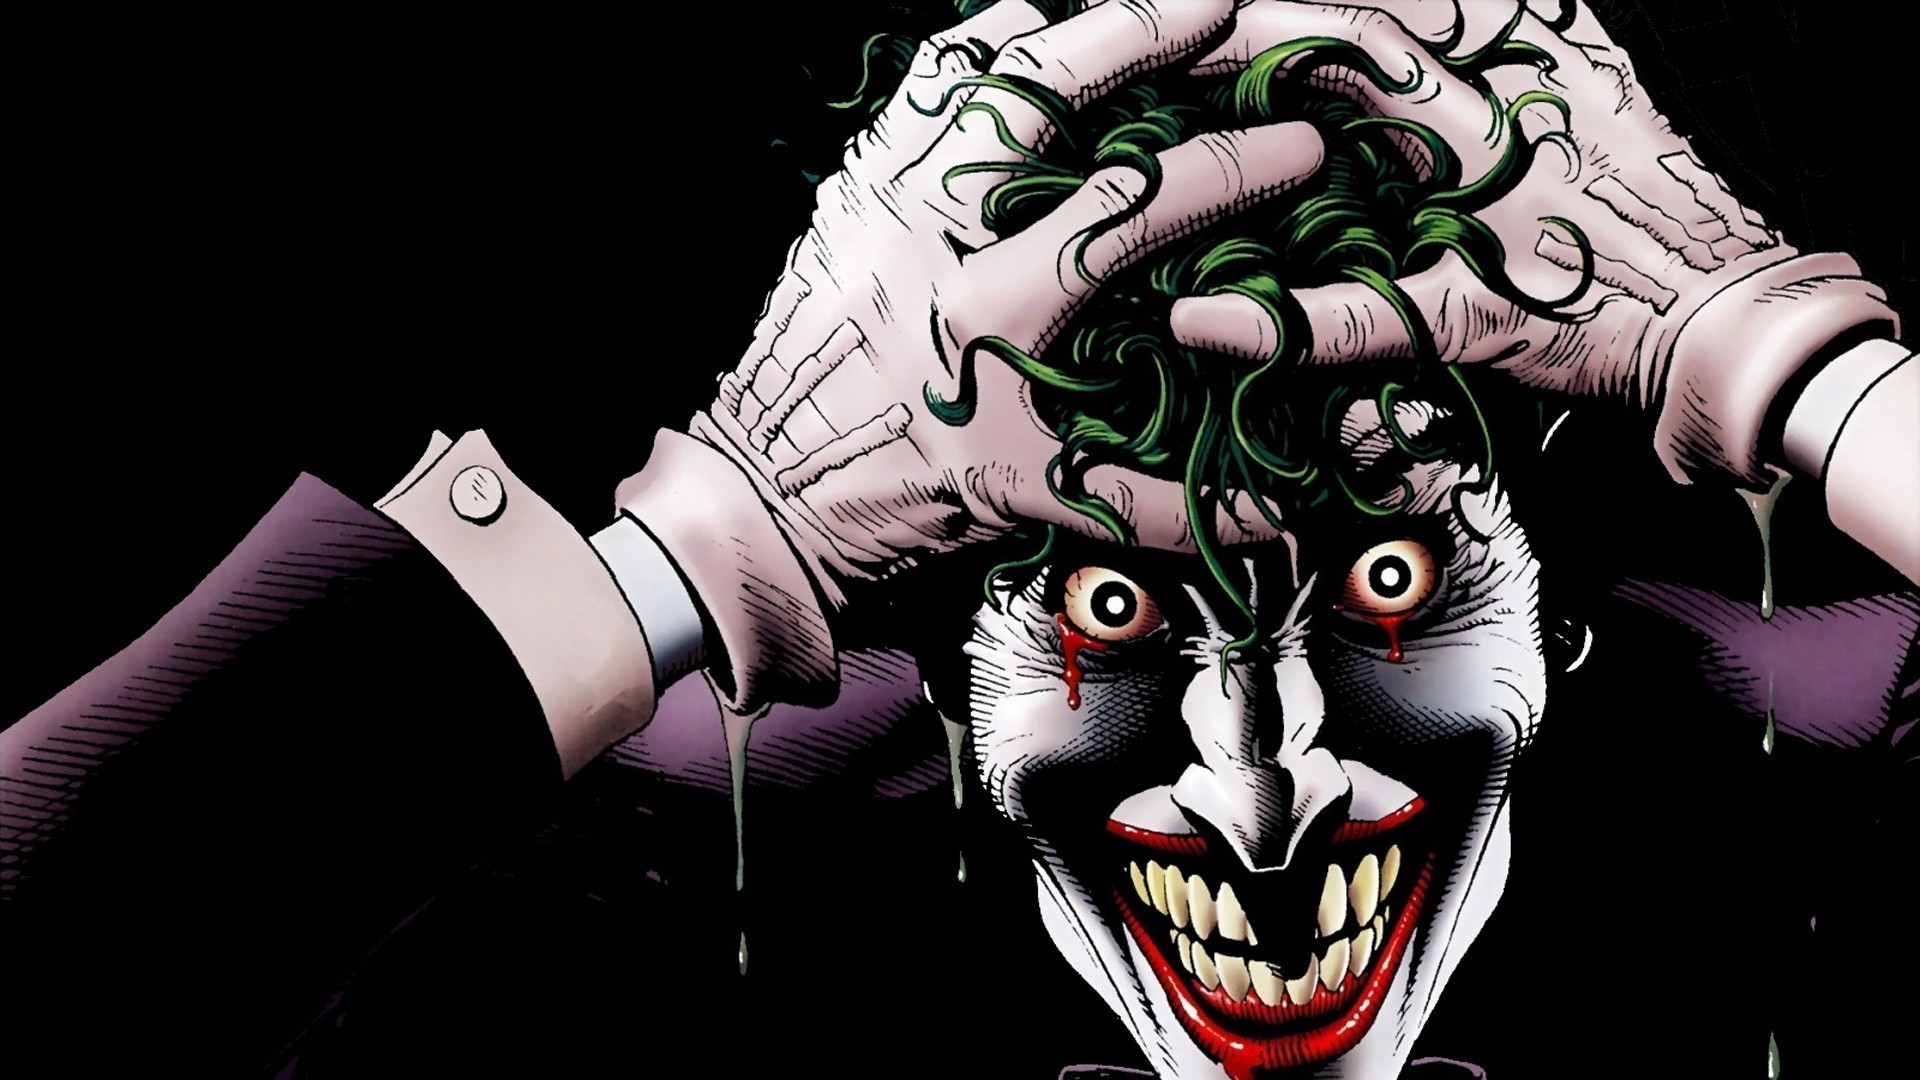 Res: 1920x1080, Clown